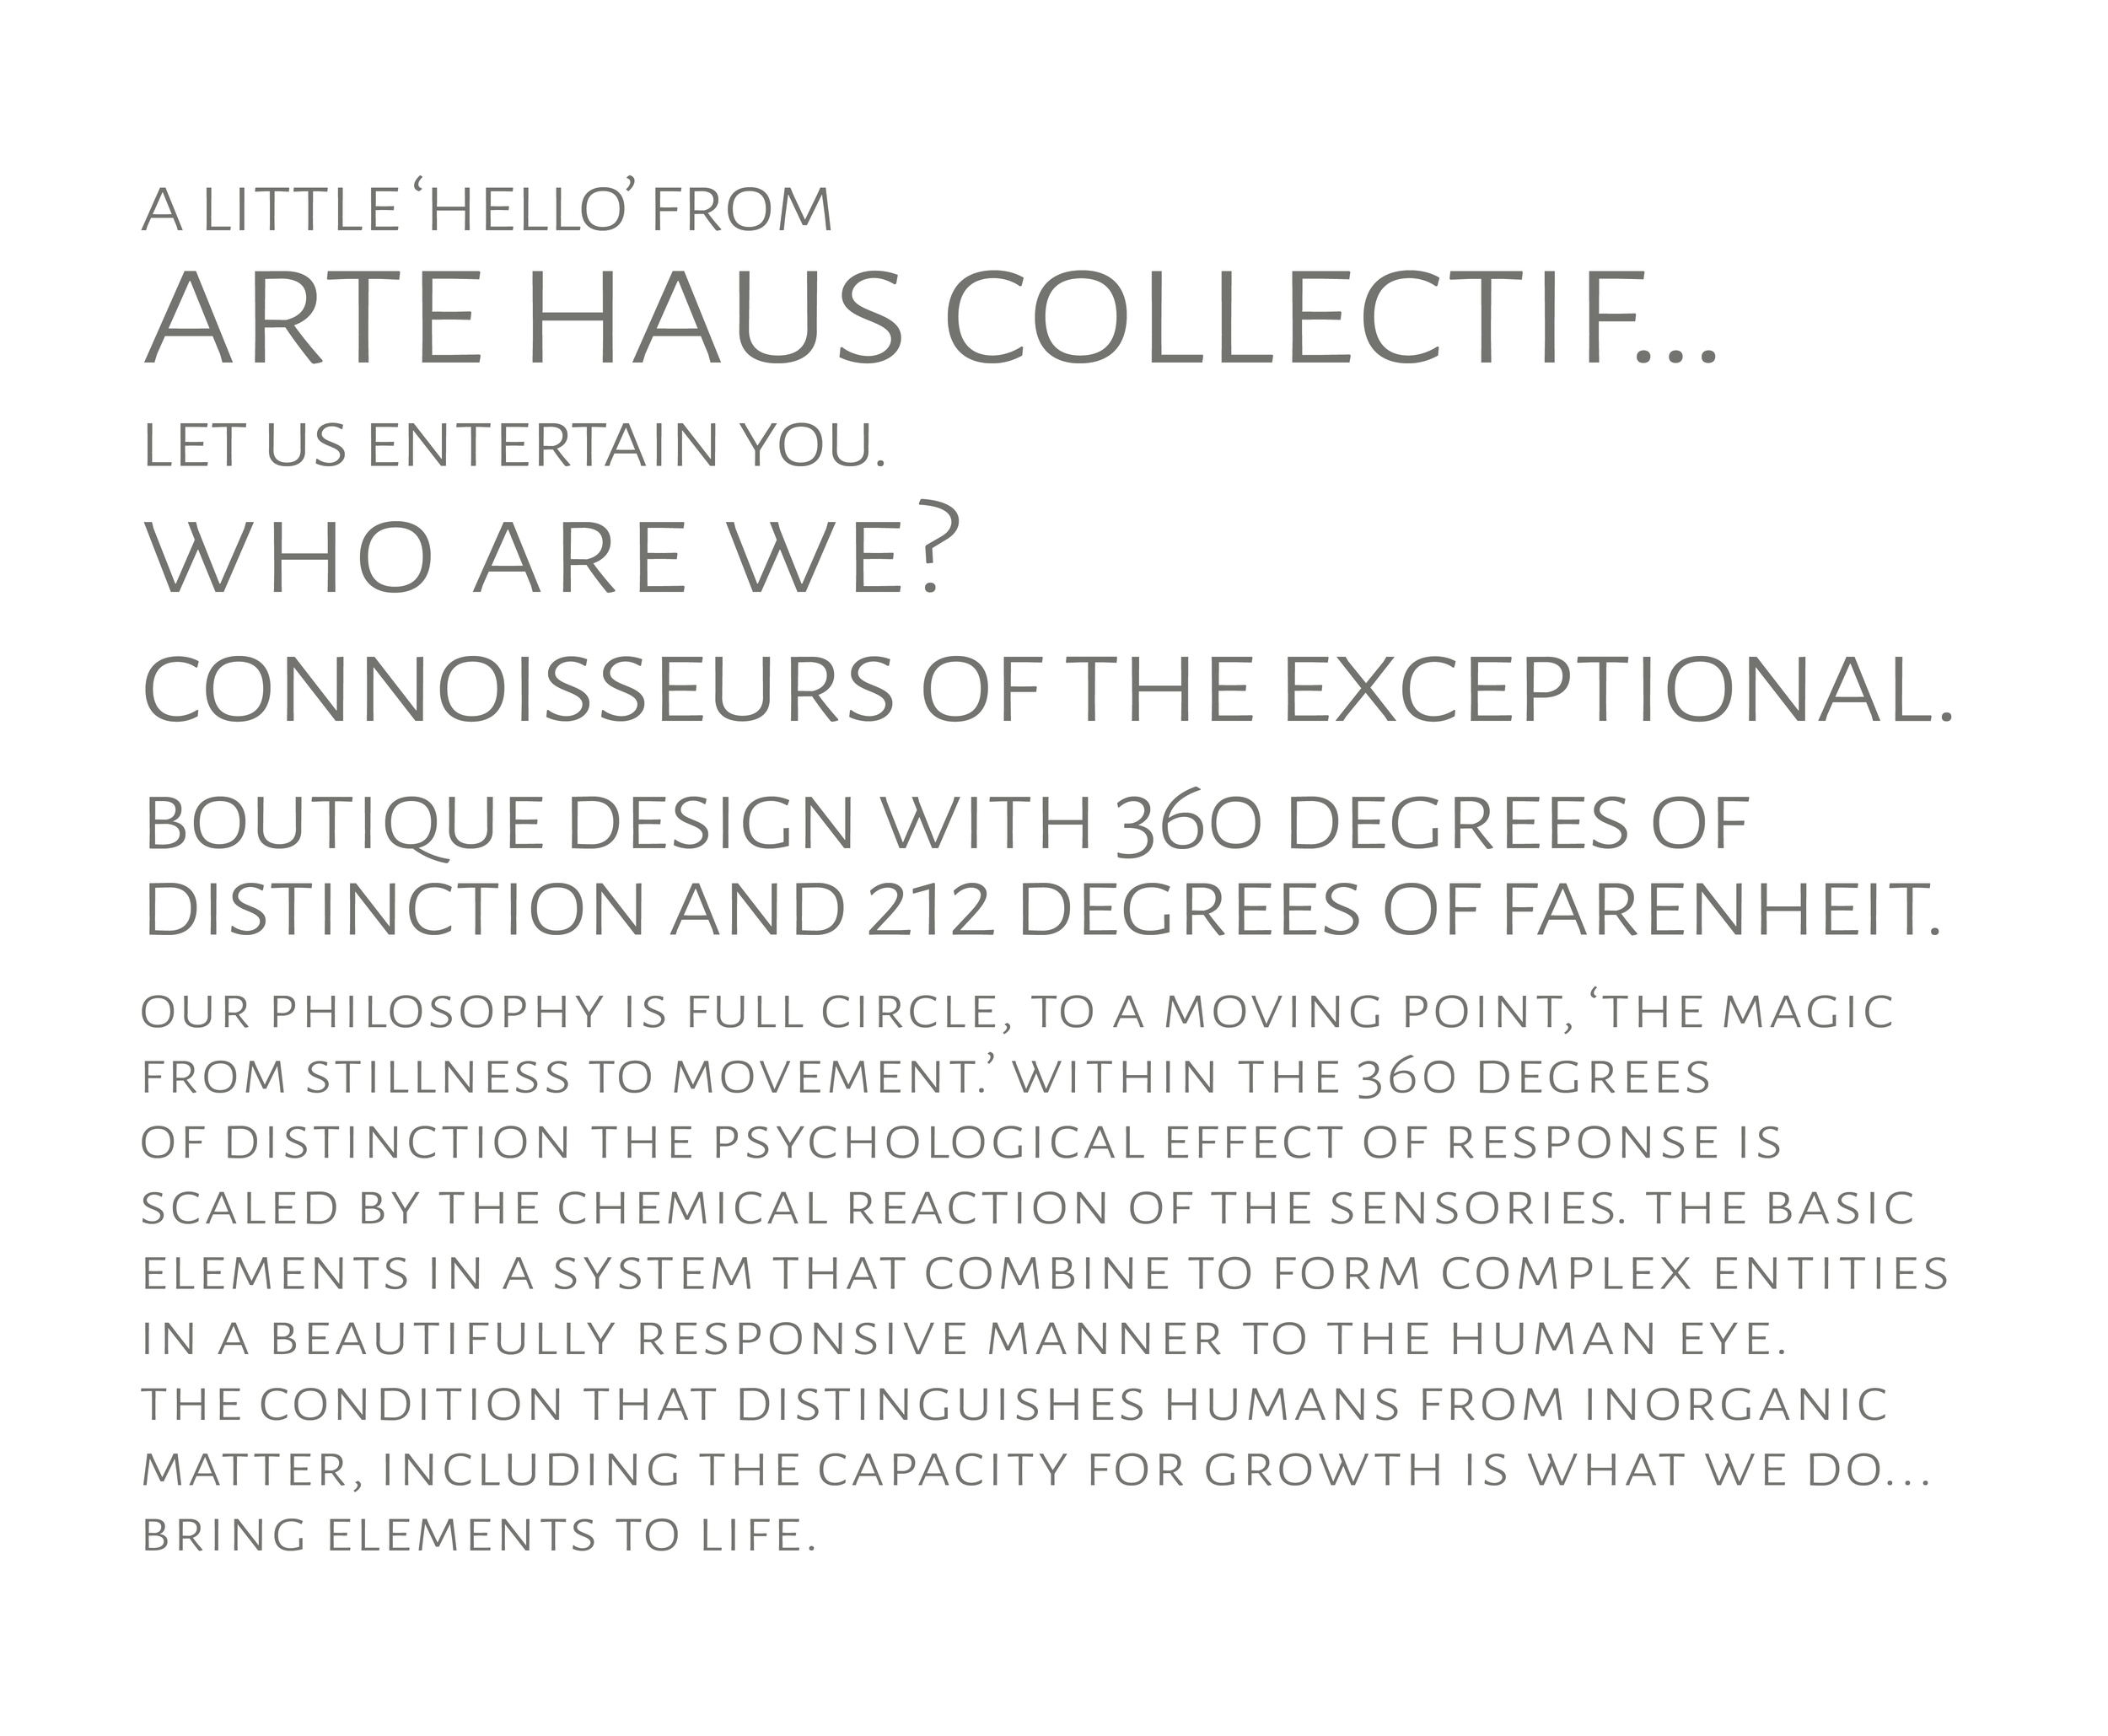 Arte Haus Collectif Who Are We Arte Haus Collectif